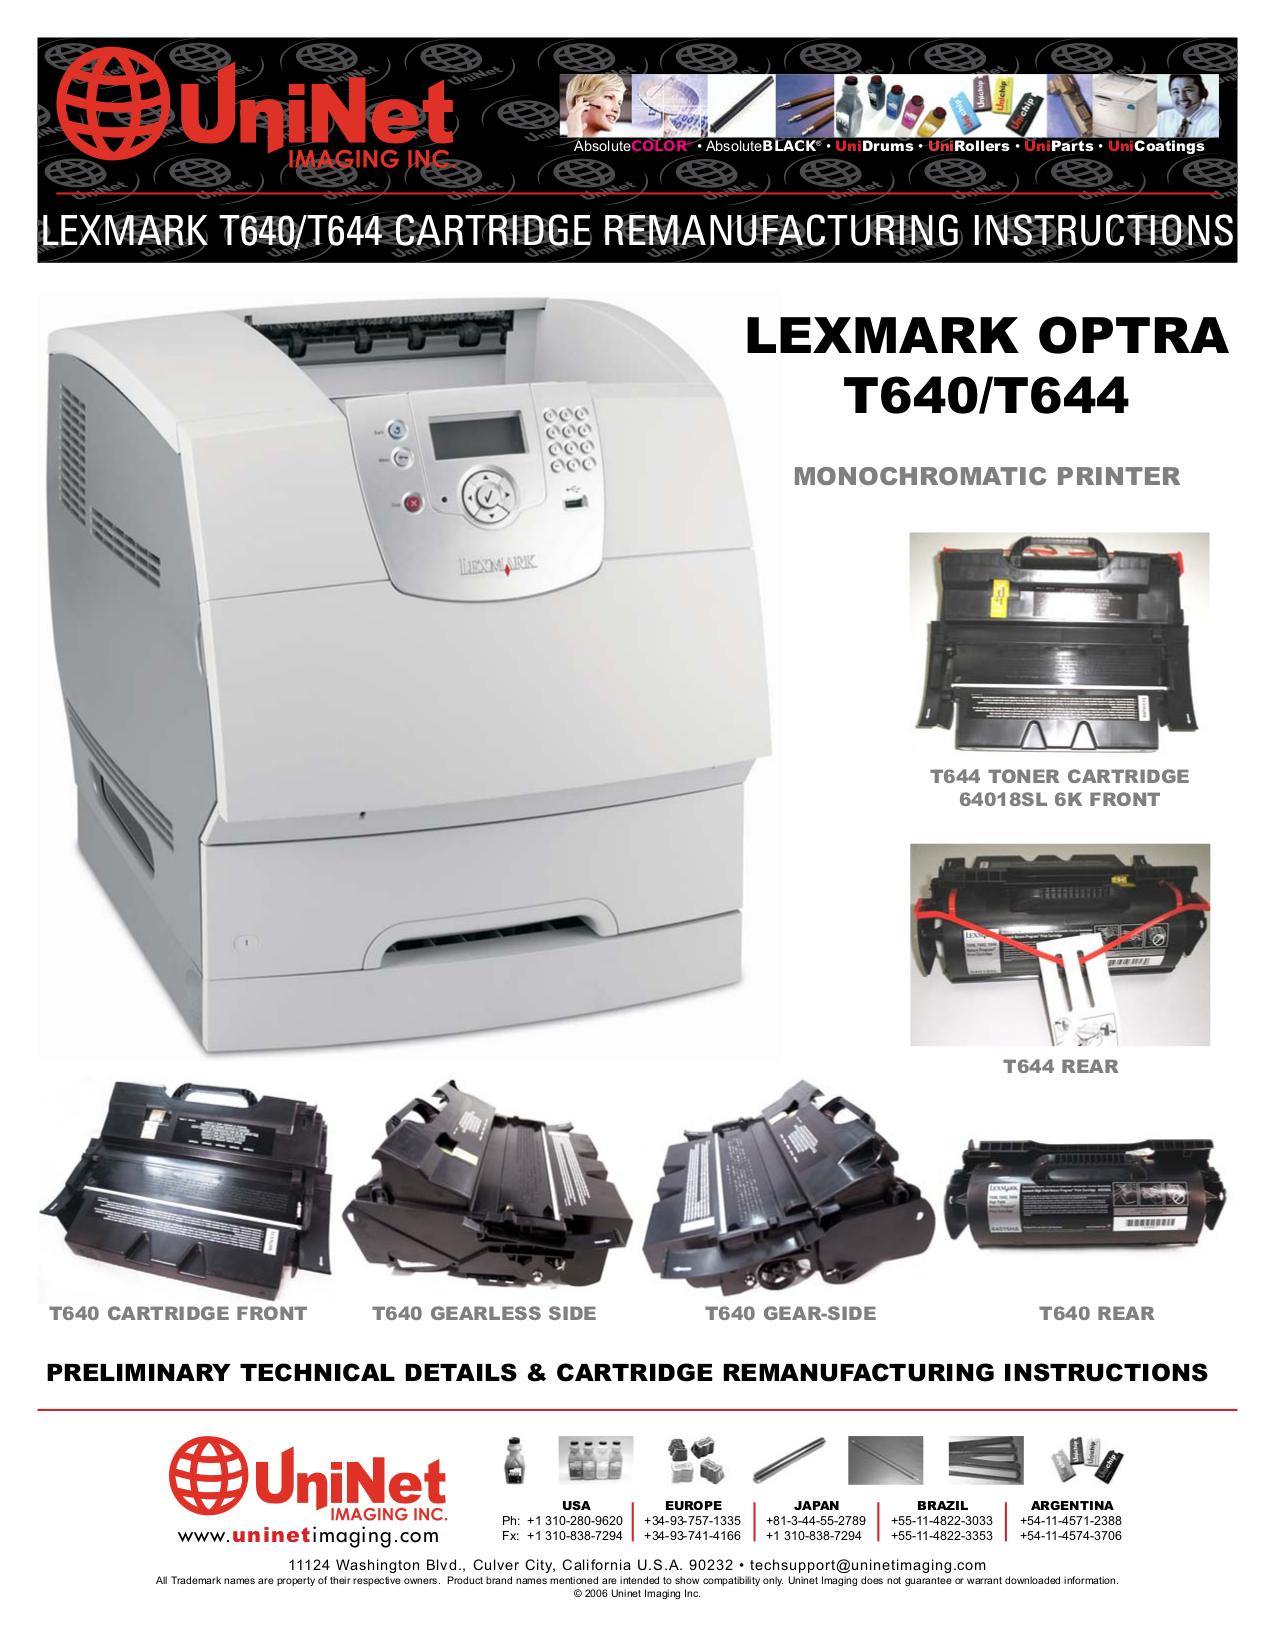 download free pdf for lexmark t640 printer manual rh umlib com lexmark t642 printer manual lexmark t640 printer driver windows 7